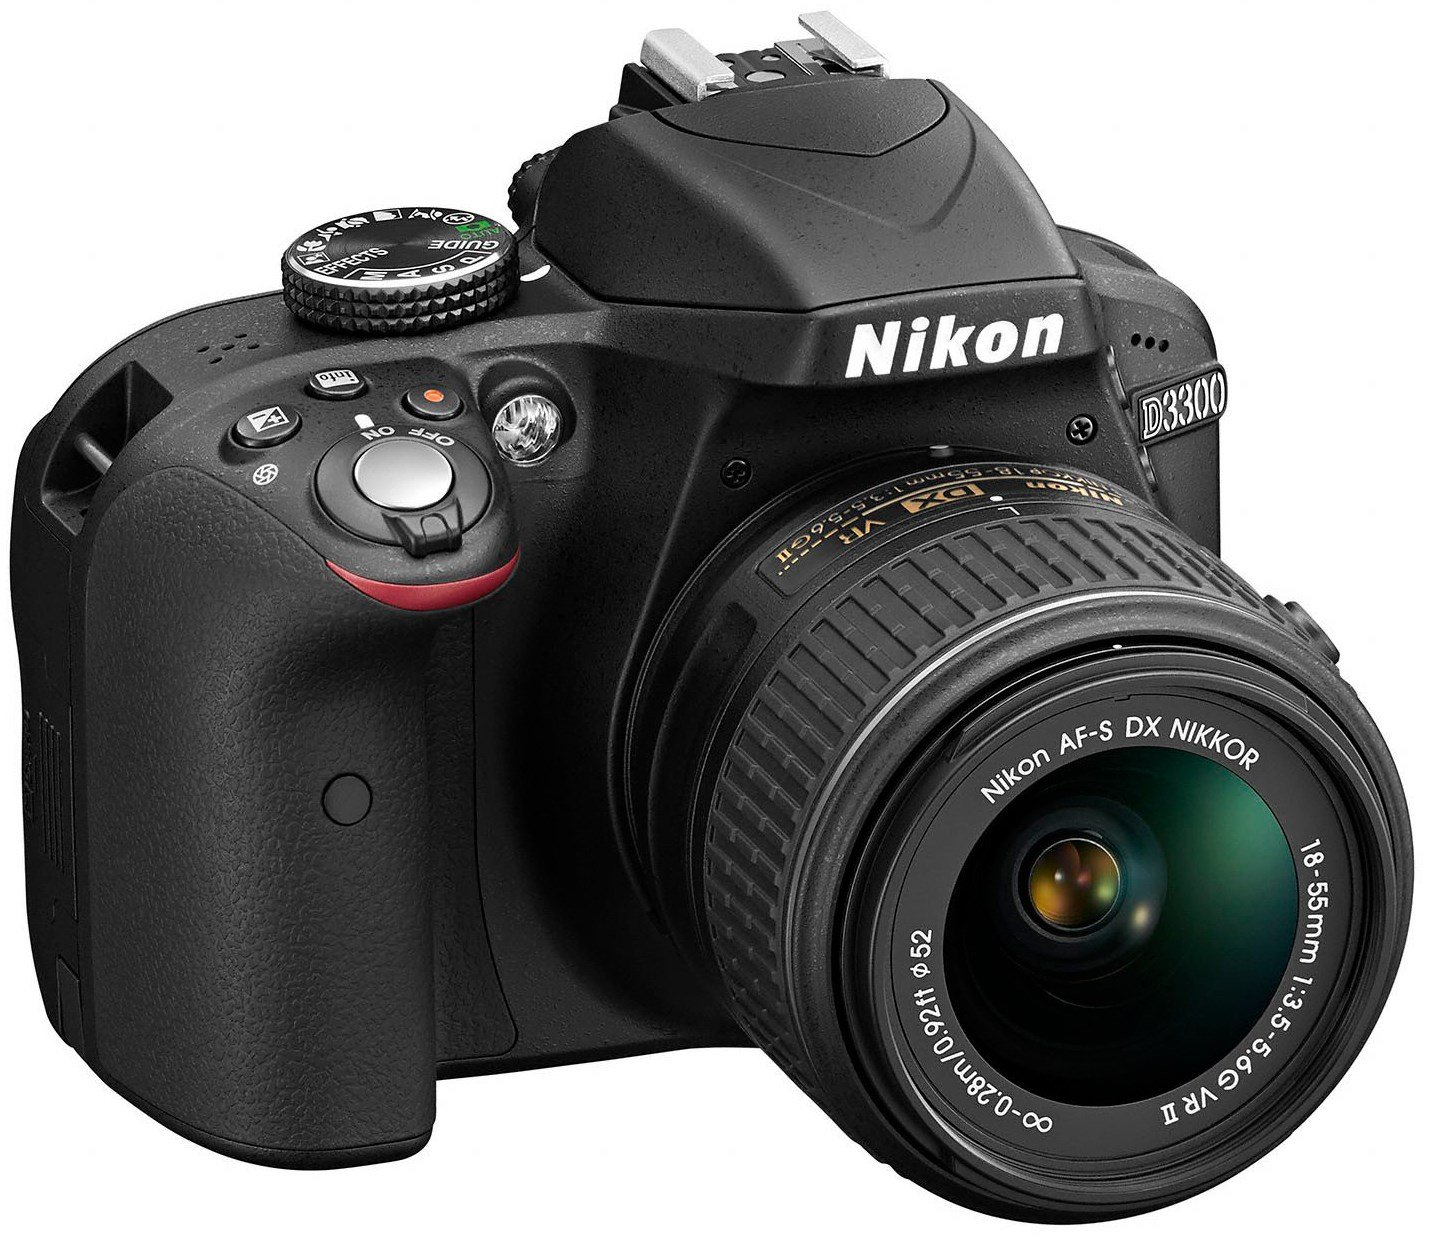 Camera Prices Of Dslr Cameras dslr camera prices in pakistan at symbios pk nikon d3300 with 18 55mm lens